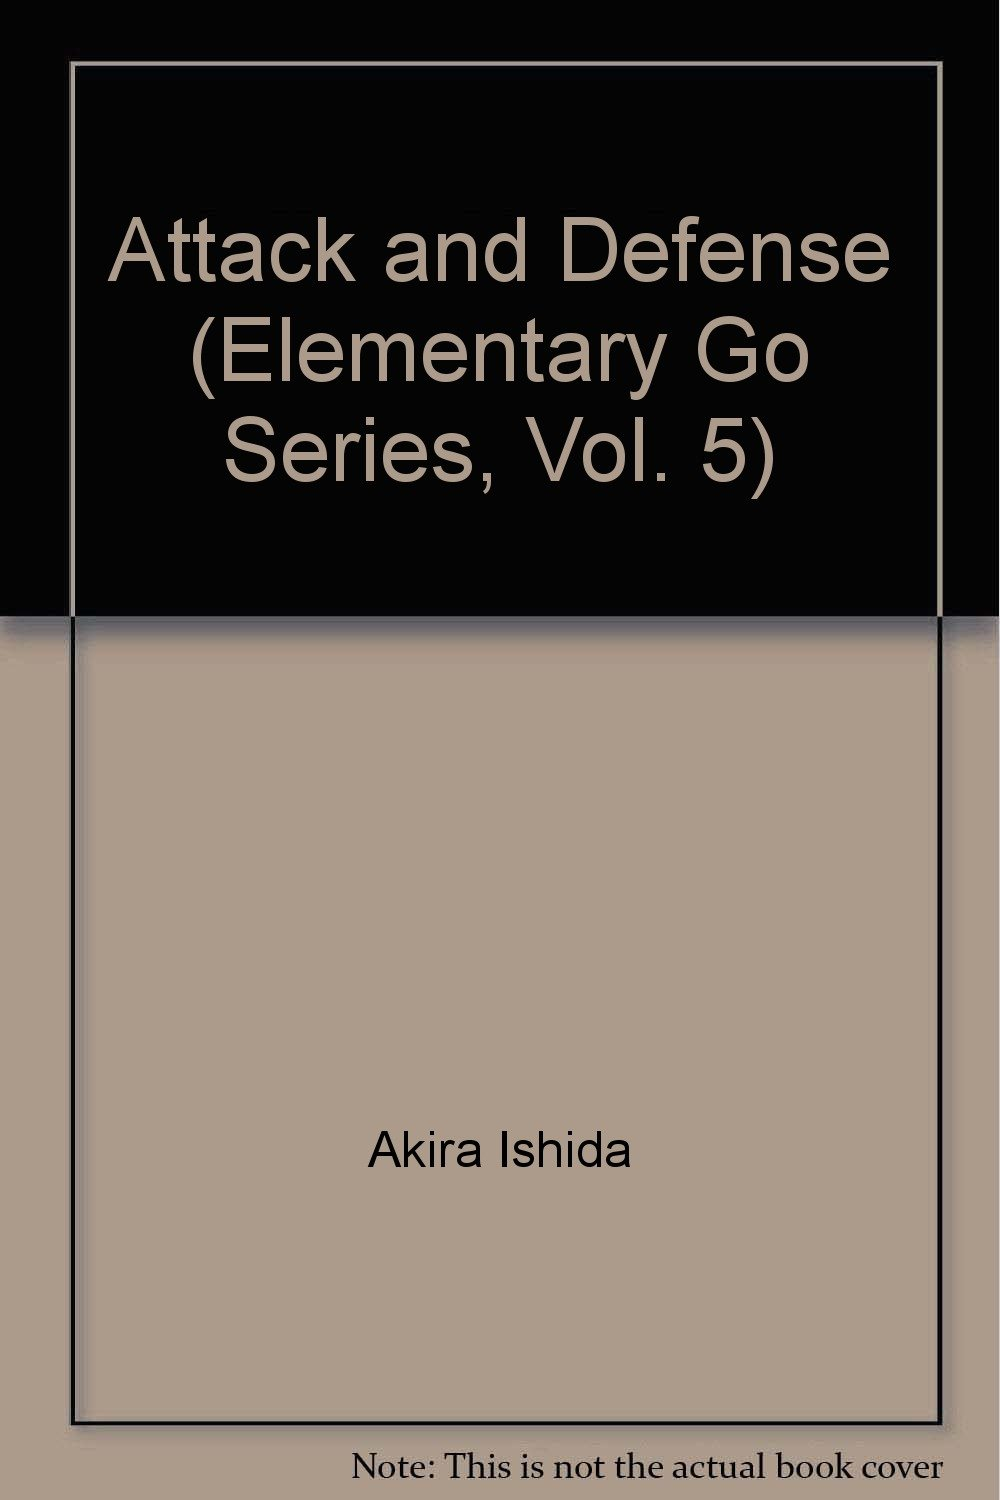 Attack and Defense (Elementary Go Series Vol. 5)